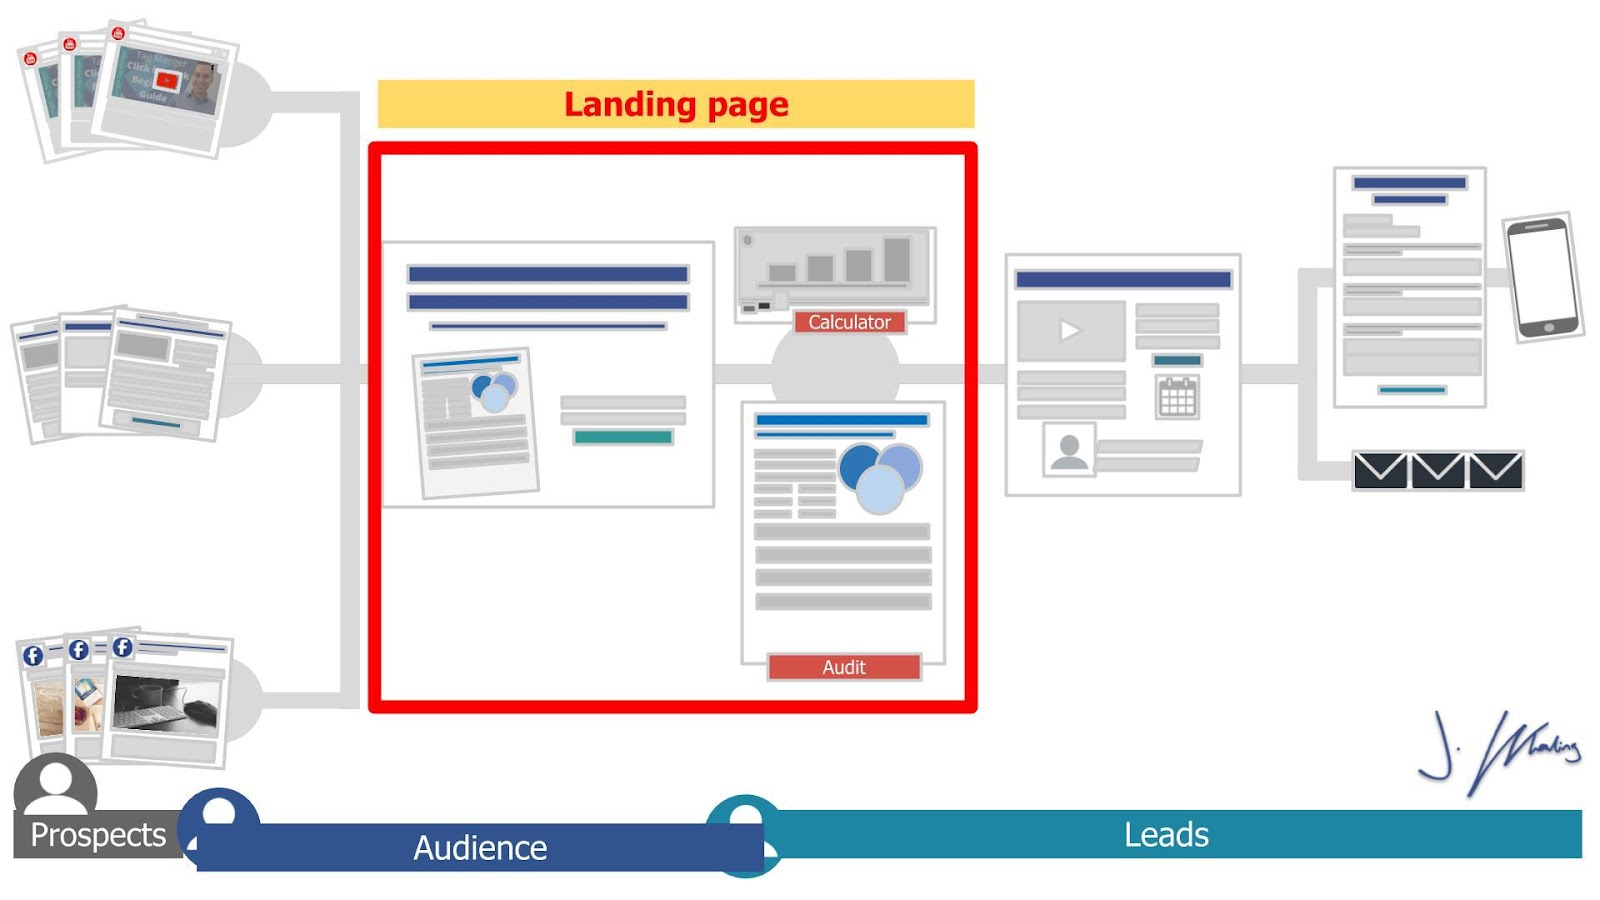 C:\Users\lenovo\Documents\ACT Marketing\Downloads from Slides\Blog version of M125 - B2B Sales Funnel.jpg